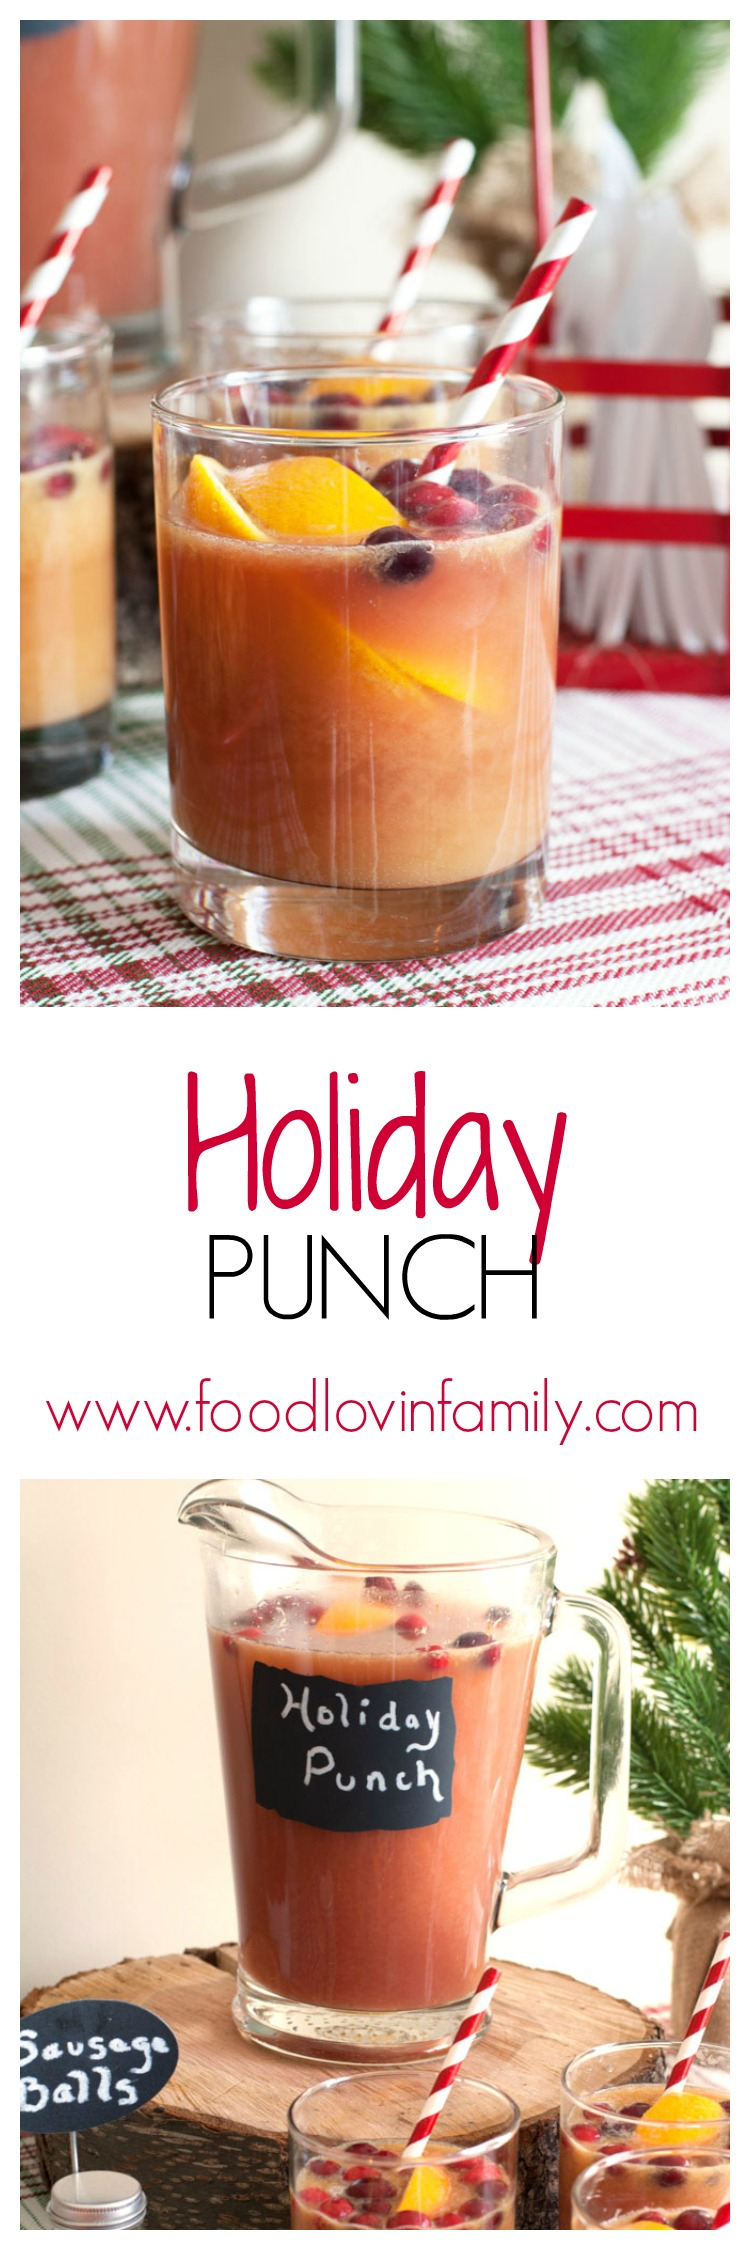 Feel refreshed through the winter and at your next holiday gathering with Emergen-C and this holiday punch.